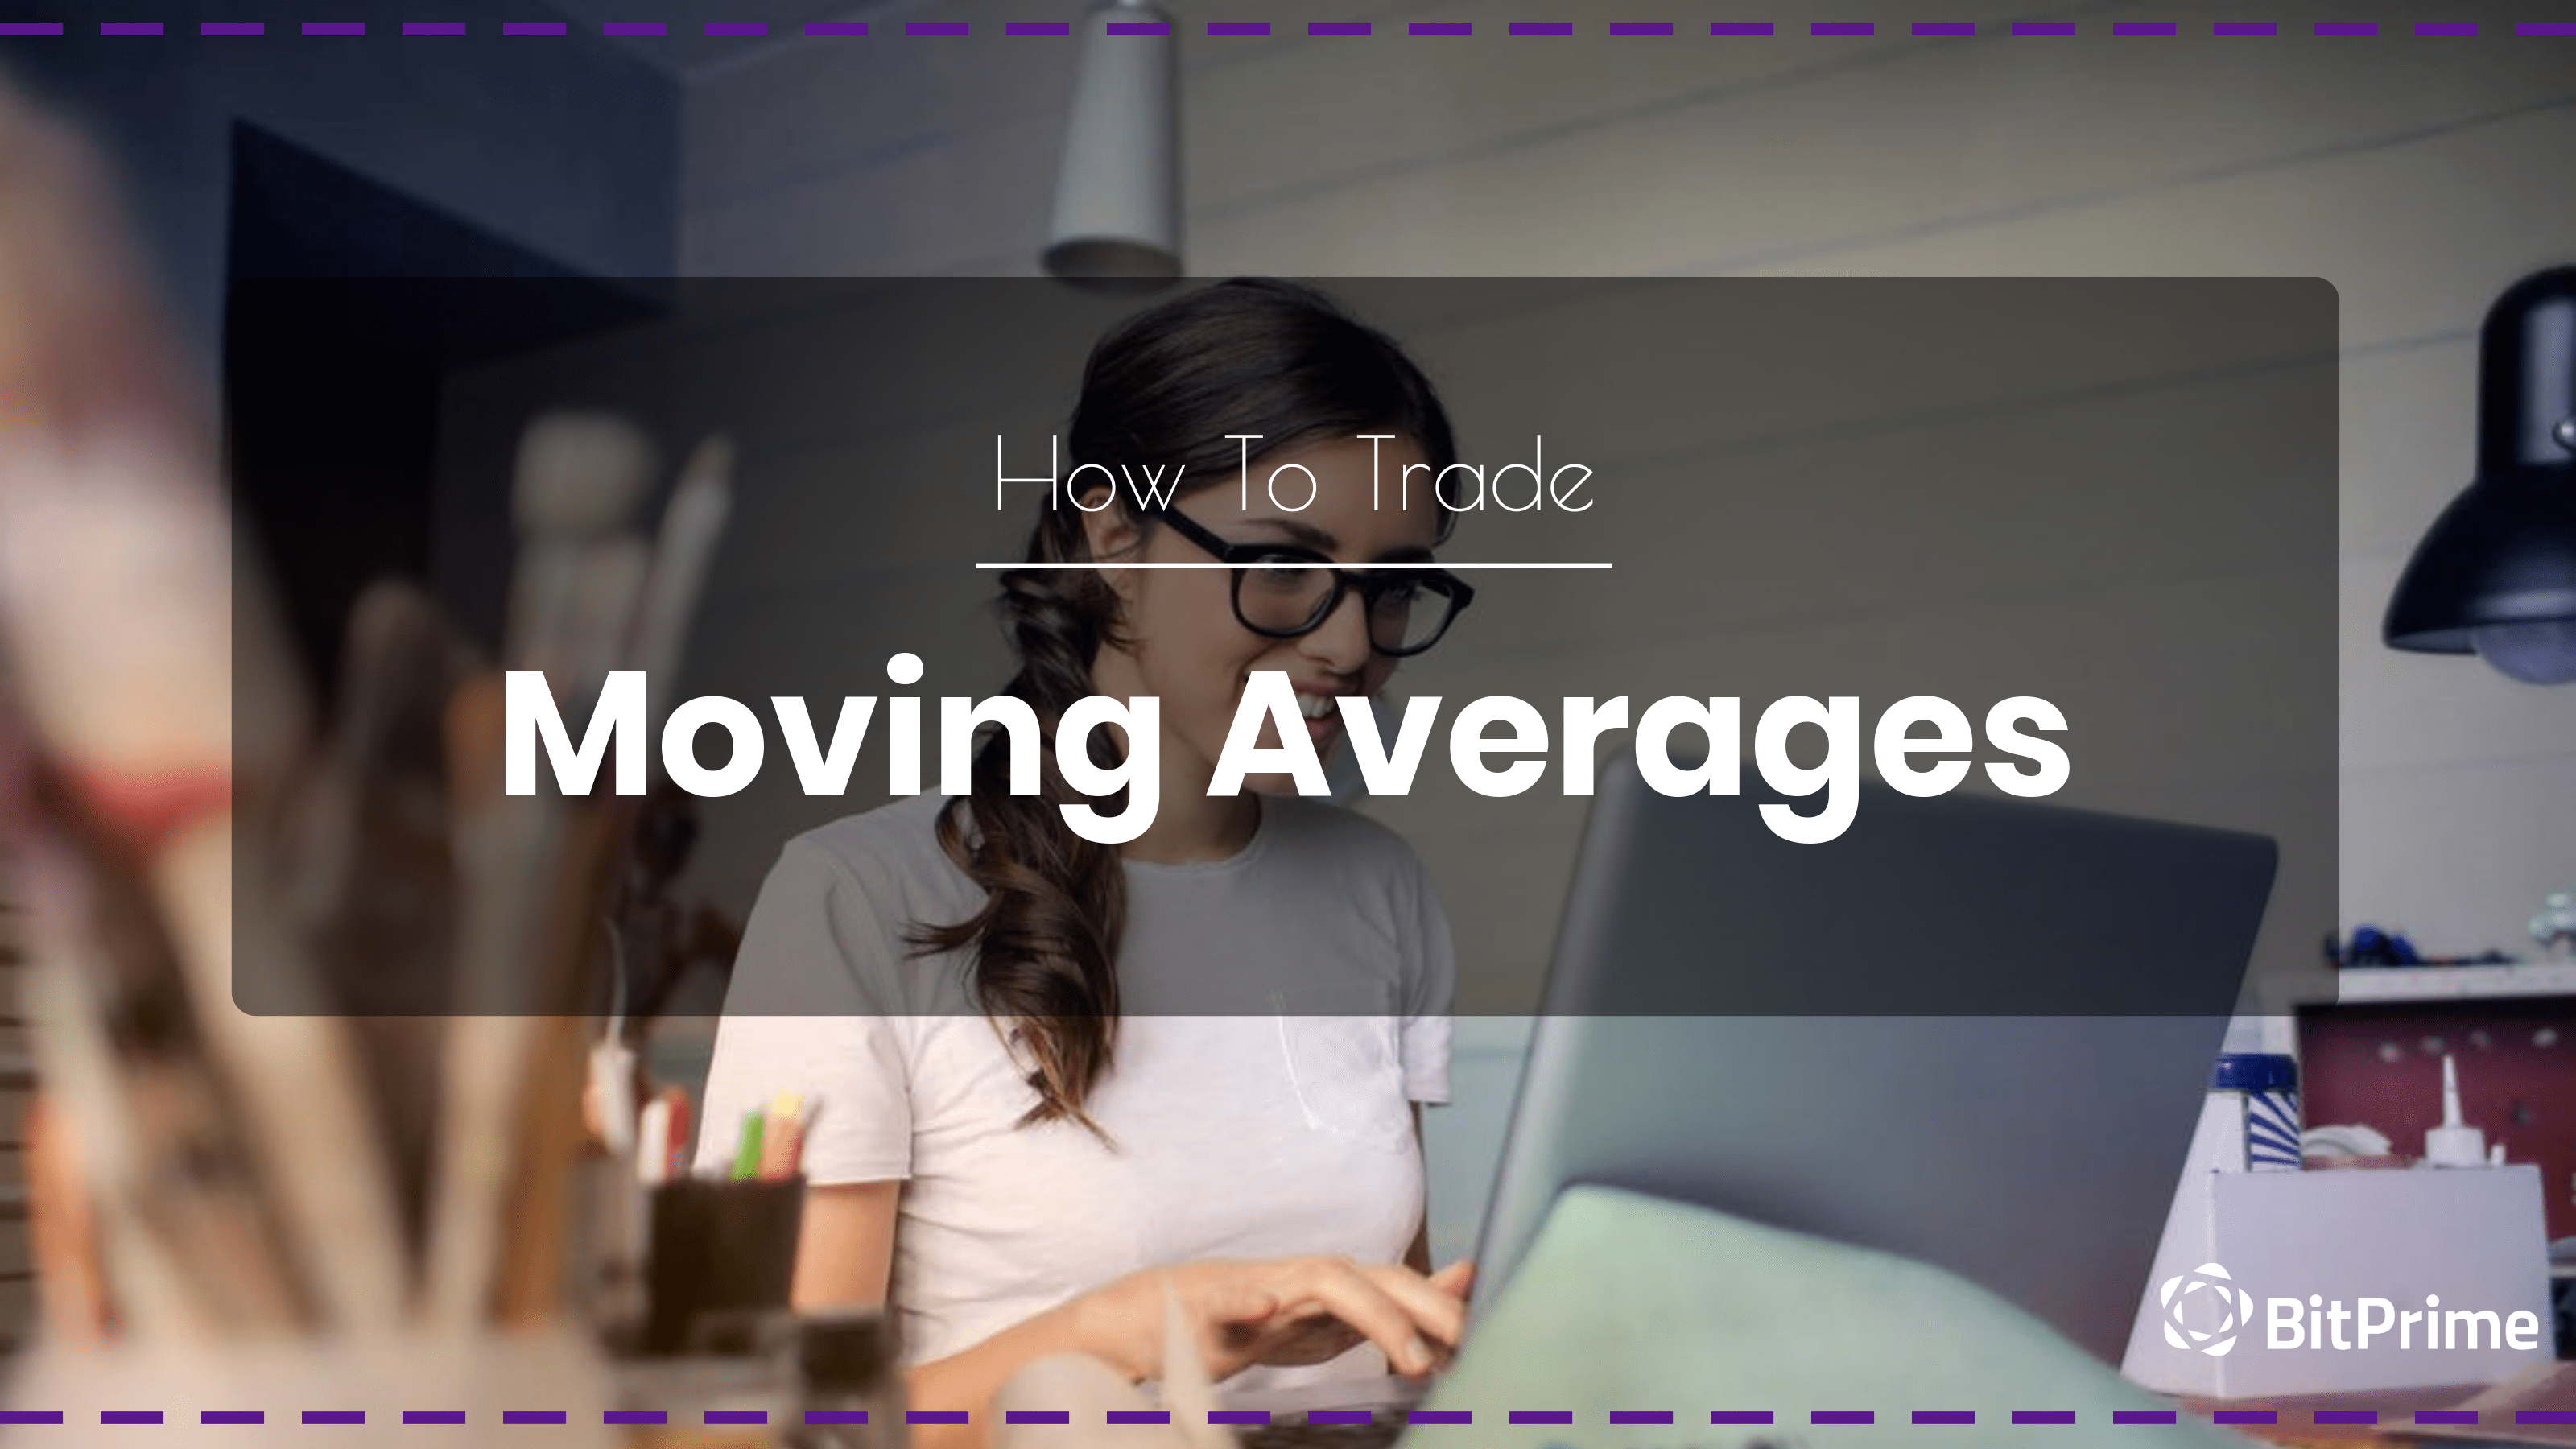 How to Trade Using Moving Averages